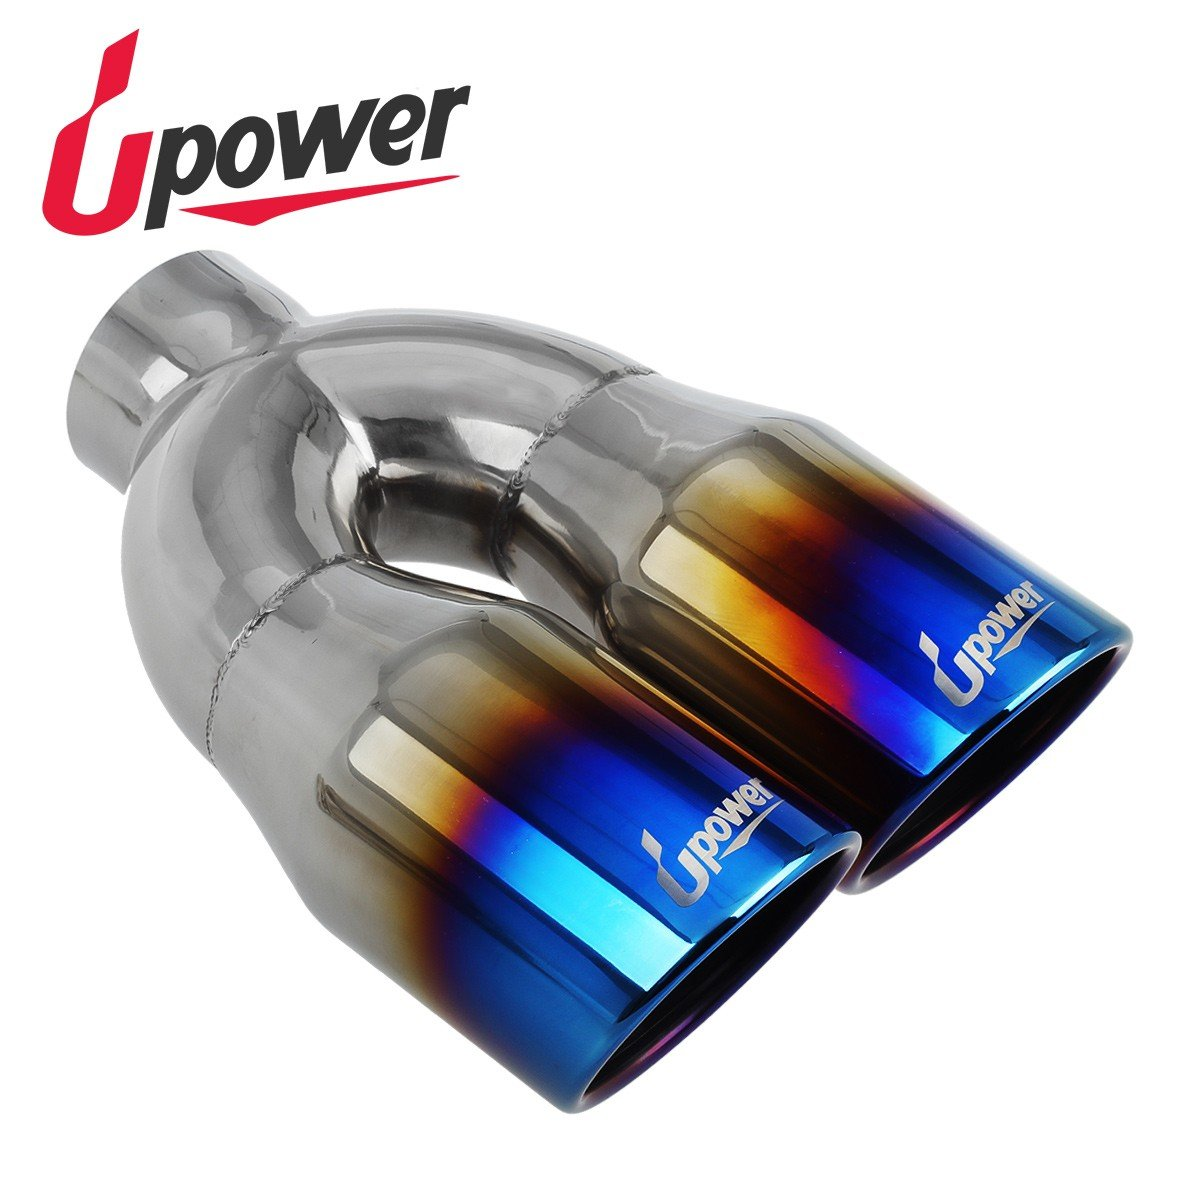 2 PCS Upower Dual Outlet 2.5 to 3.5'' Exhaust Tips Vaccum Plating Blue 10'' Long Tail Pipe Weld On by Upower